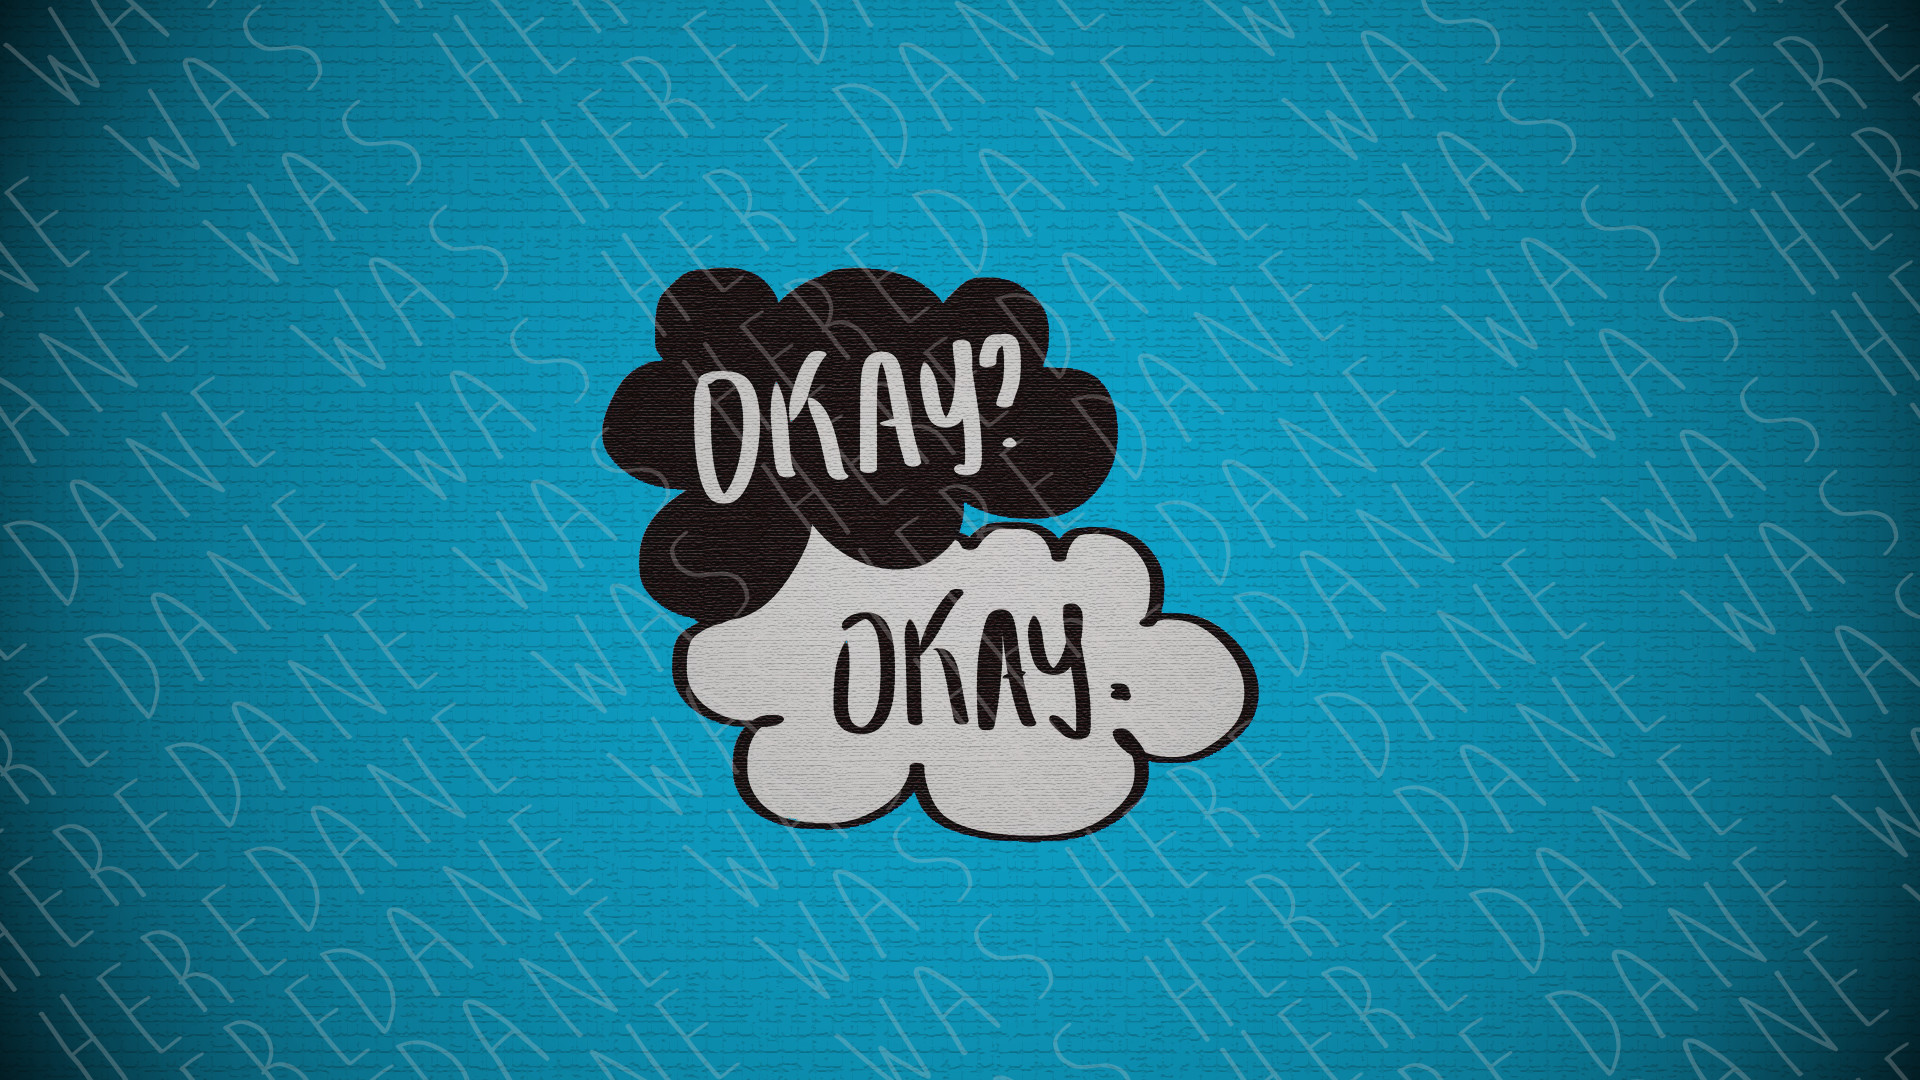 Tfios Wallpaper Quotes The Fault In Our Stars Wallpapers 62 Images